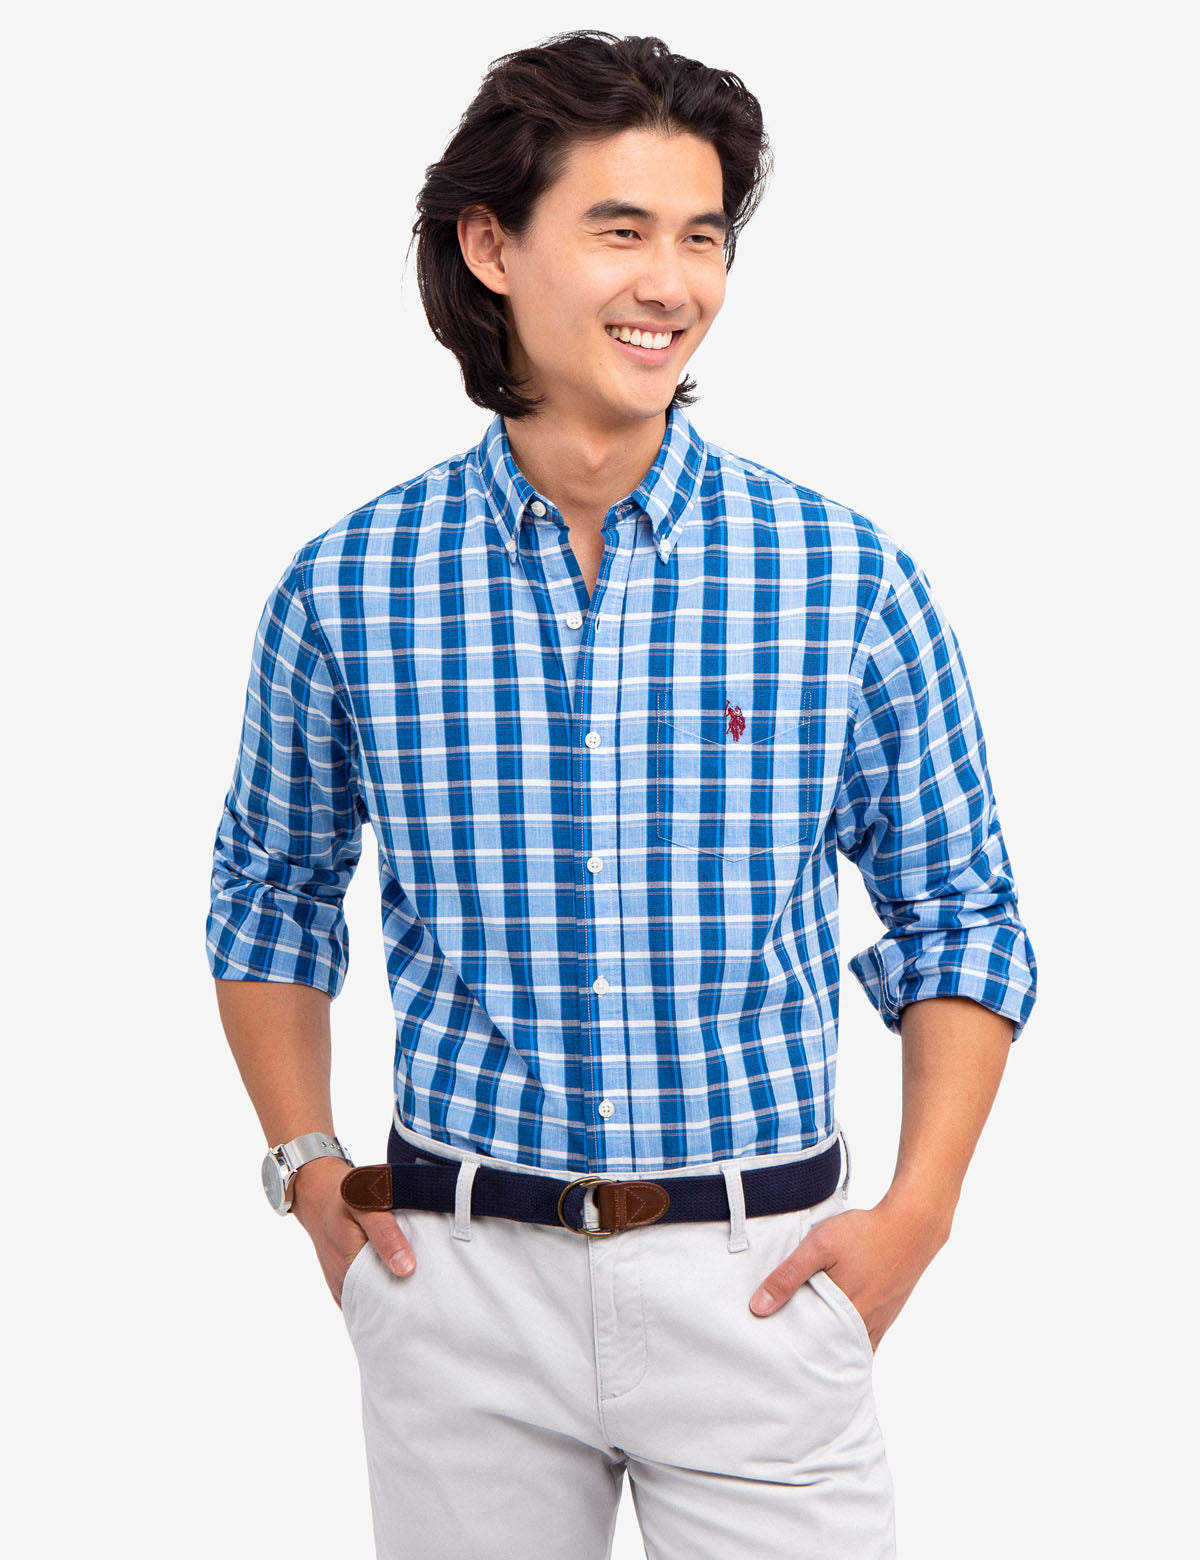 MEDIUM PLAID POPLIN SHIRT